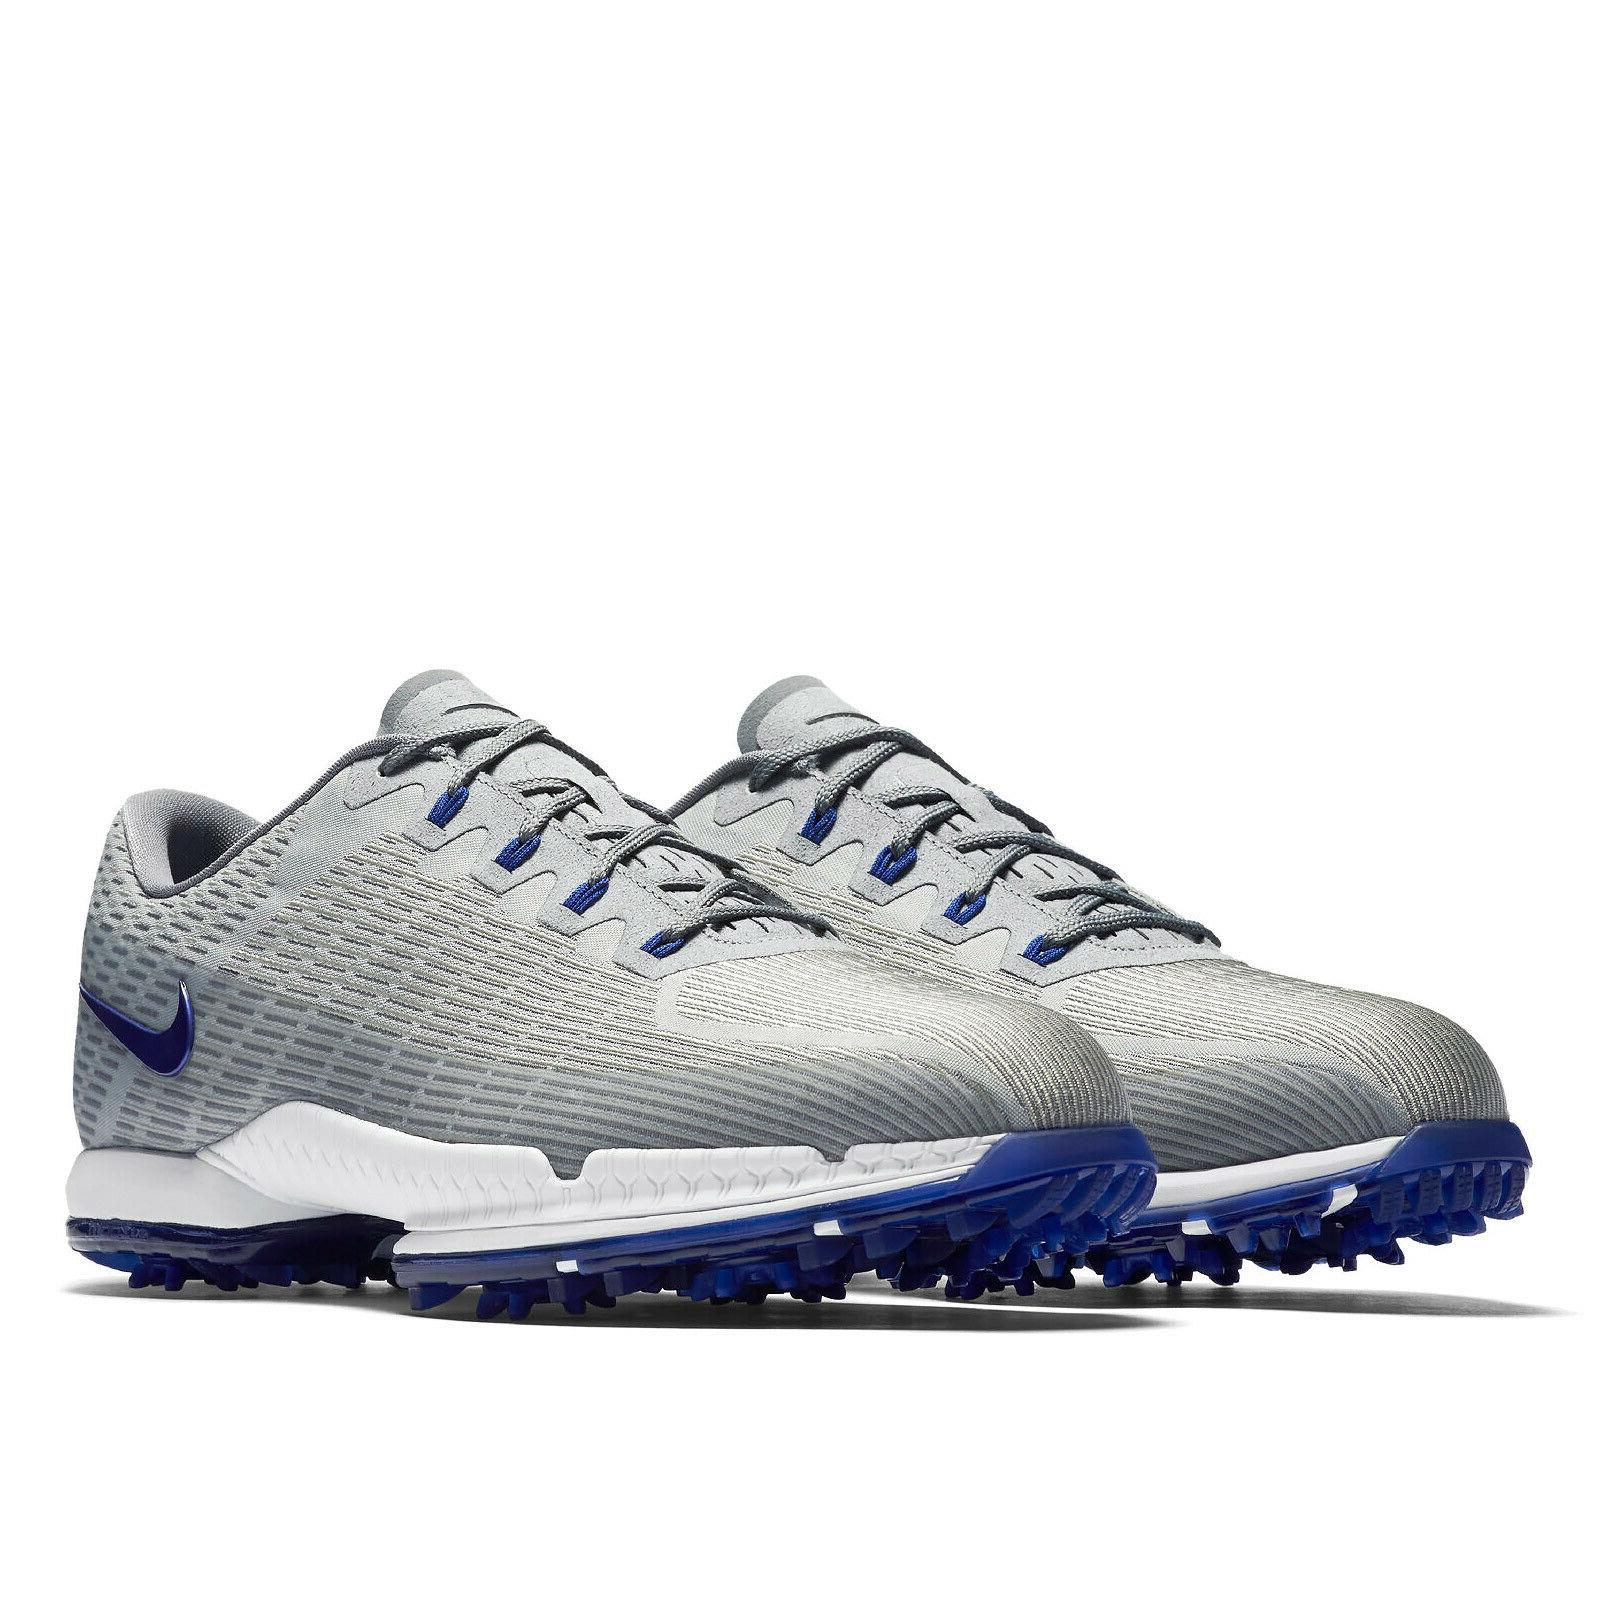 Nike Air Zoom Attack Mens Golf Shoes Cleats - Gray Blue - Pick